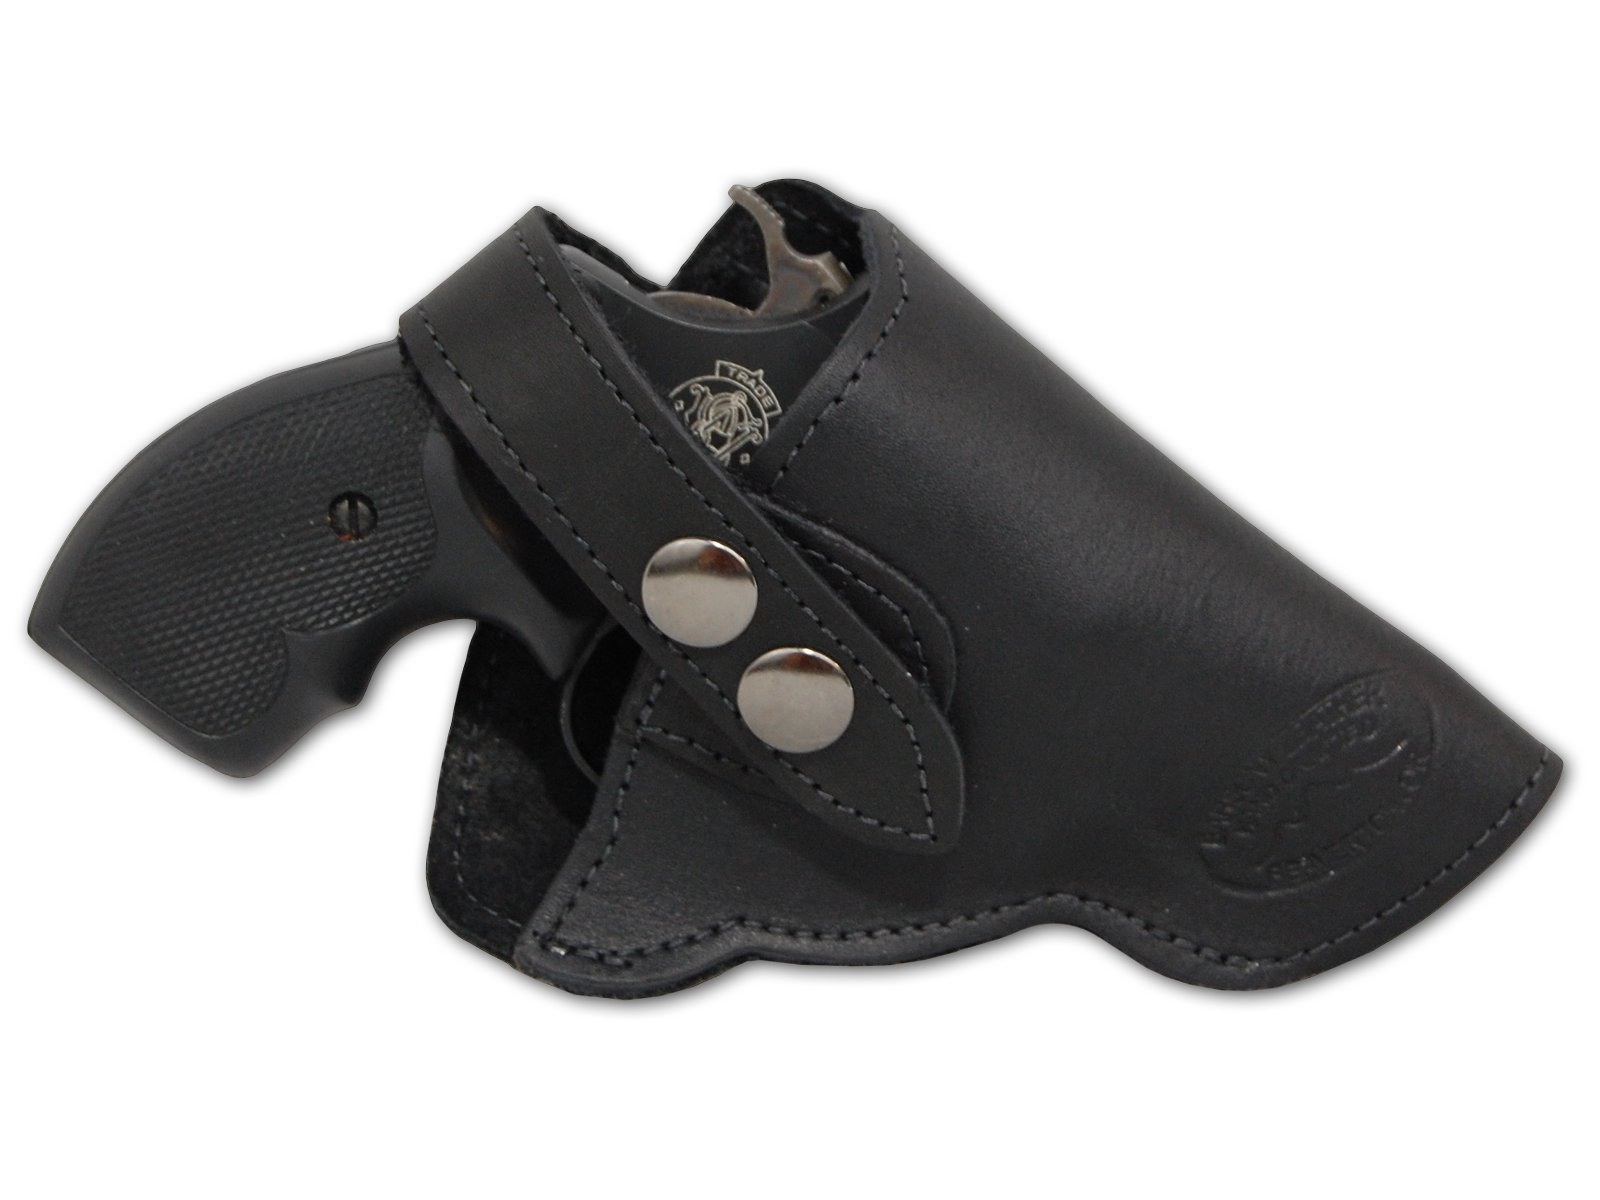 "Barsony New Black Leather OWB Holster for Snub Nose 2"" 22 38 357 41 Revolvers"